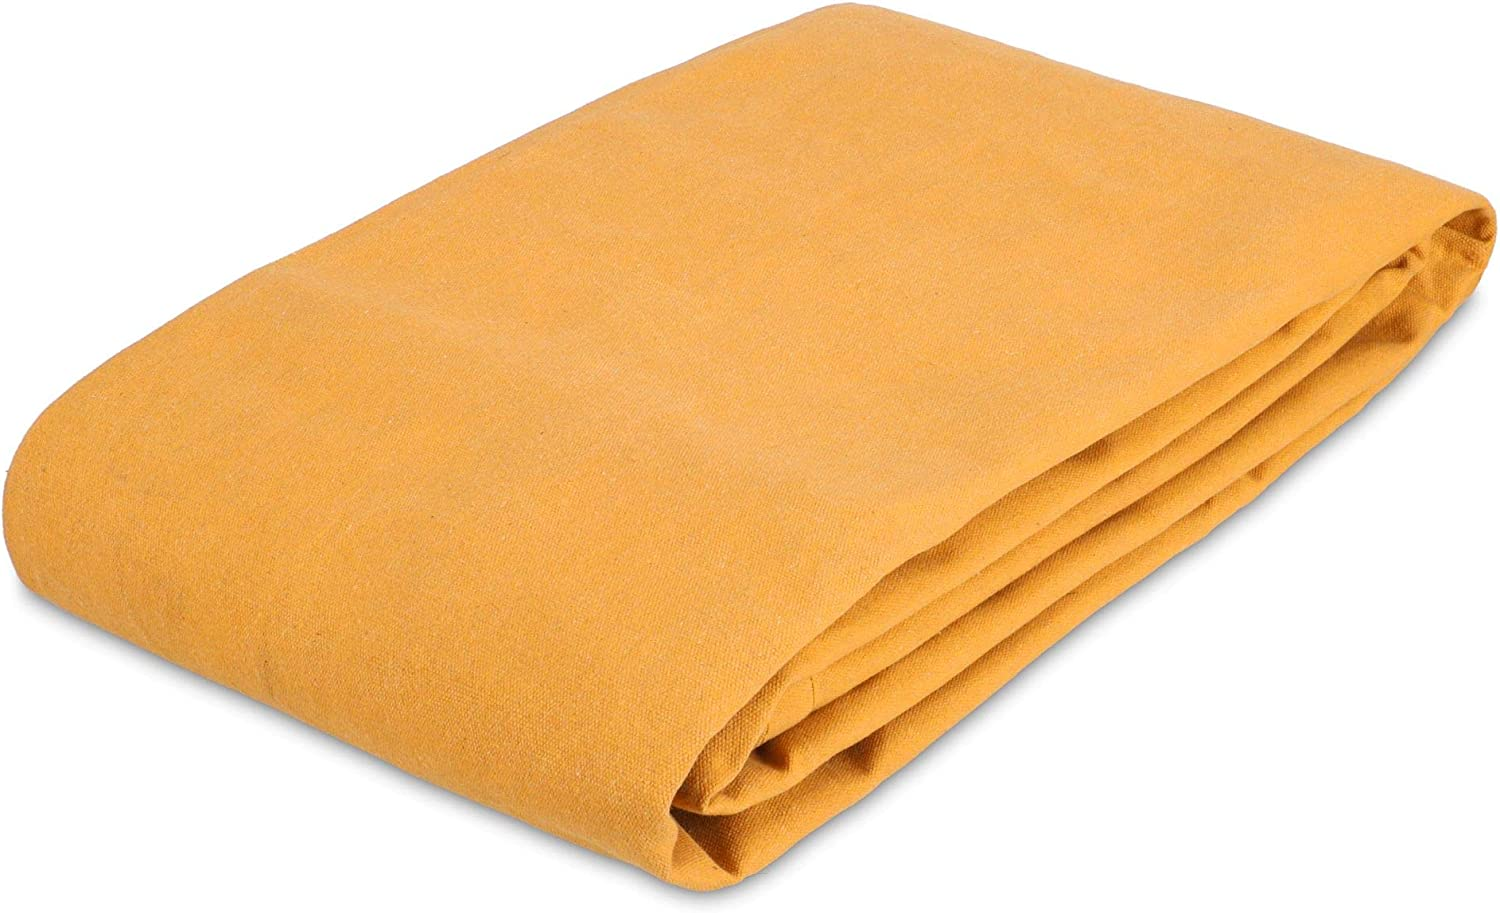 WHITEDUCK Canvas Tarp Safety and trust 18 oz. Heavy Sale Special Price UV Resistant Duty Waterproof